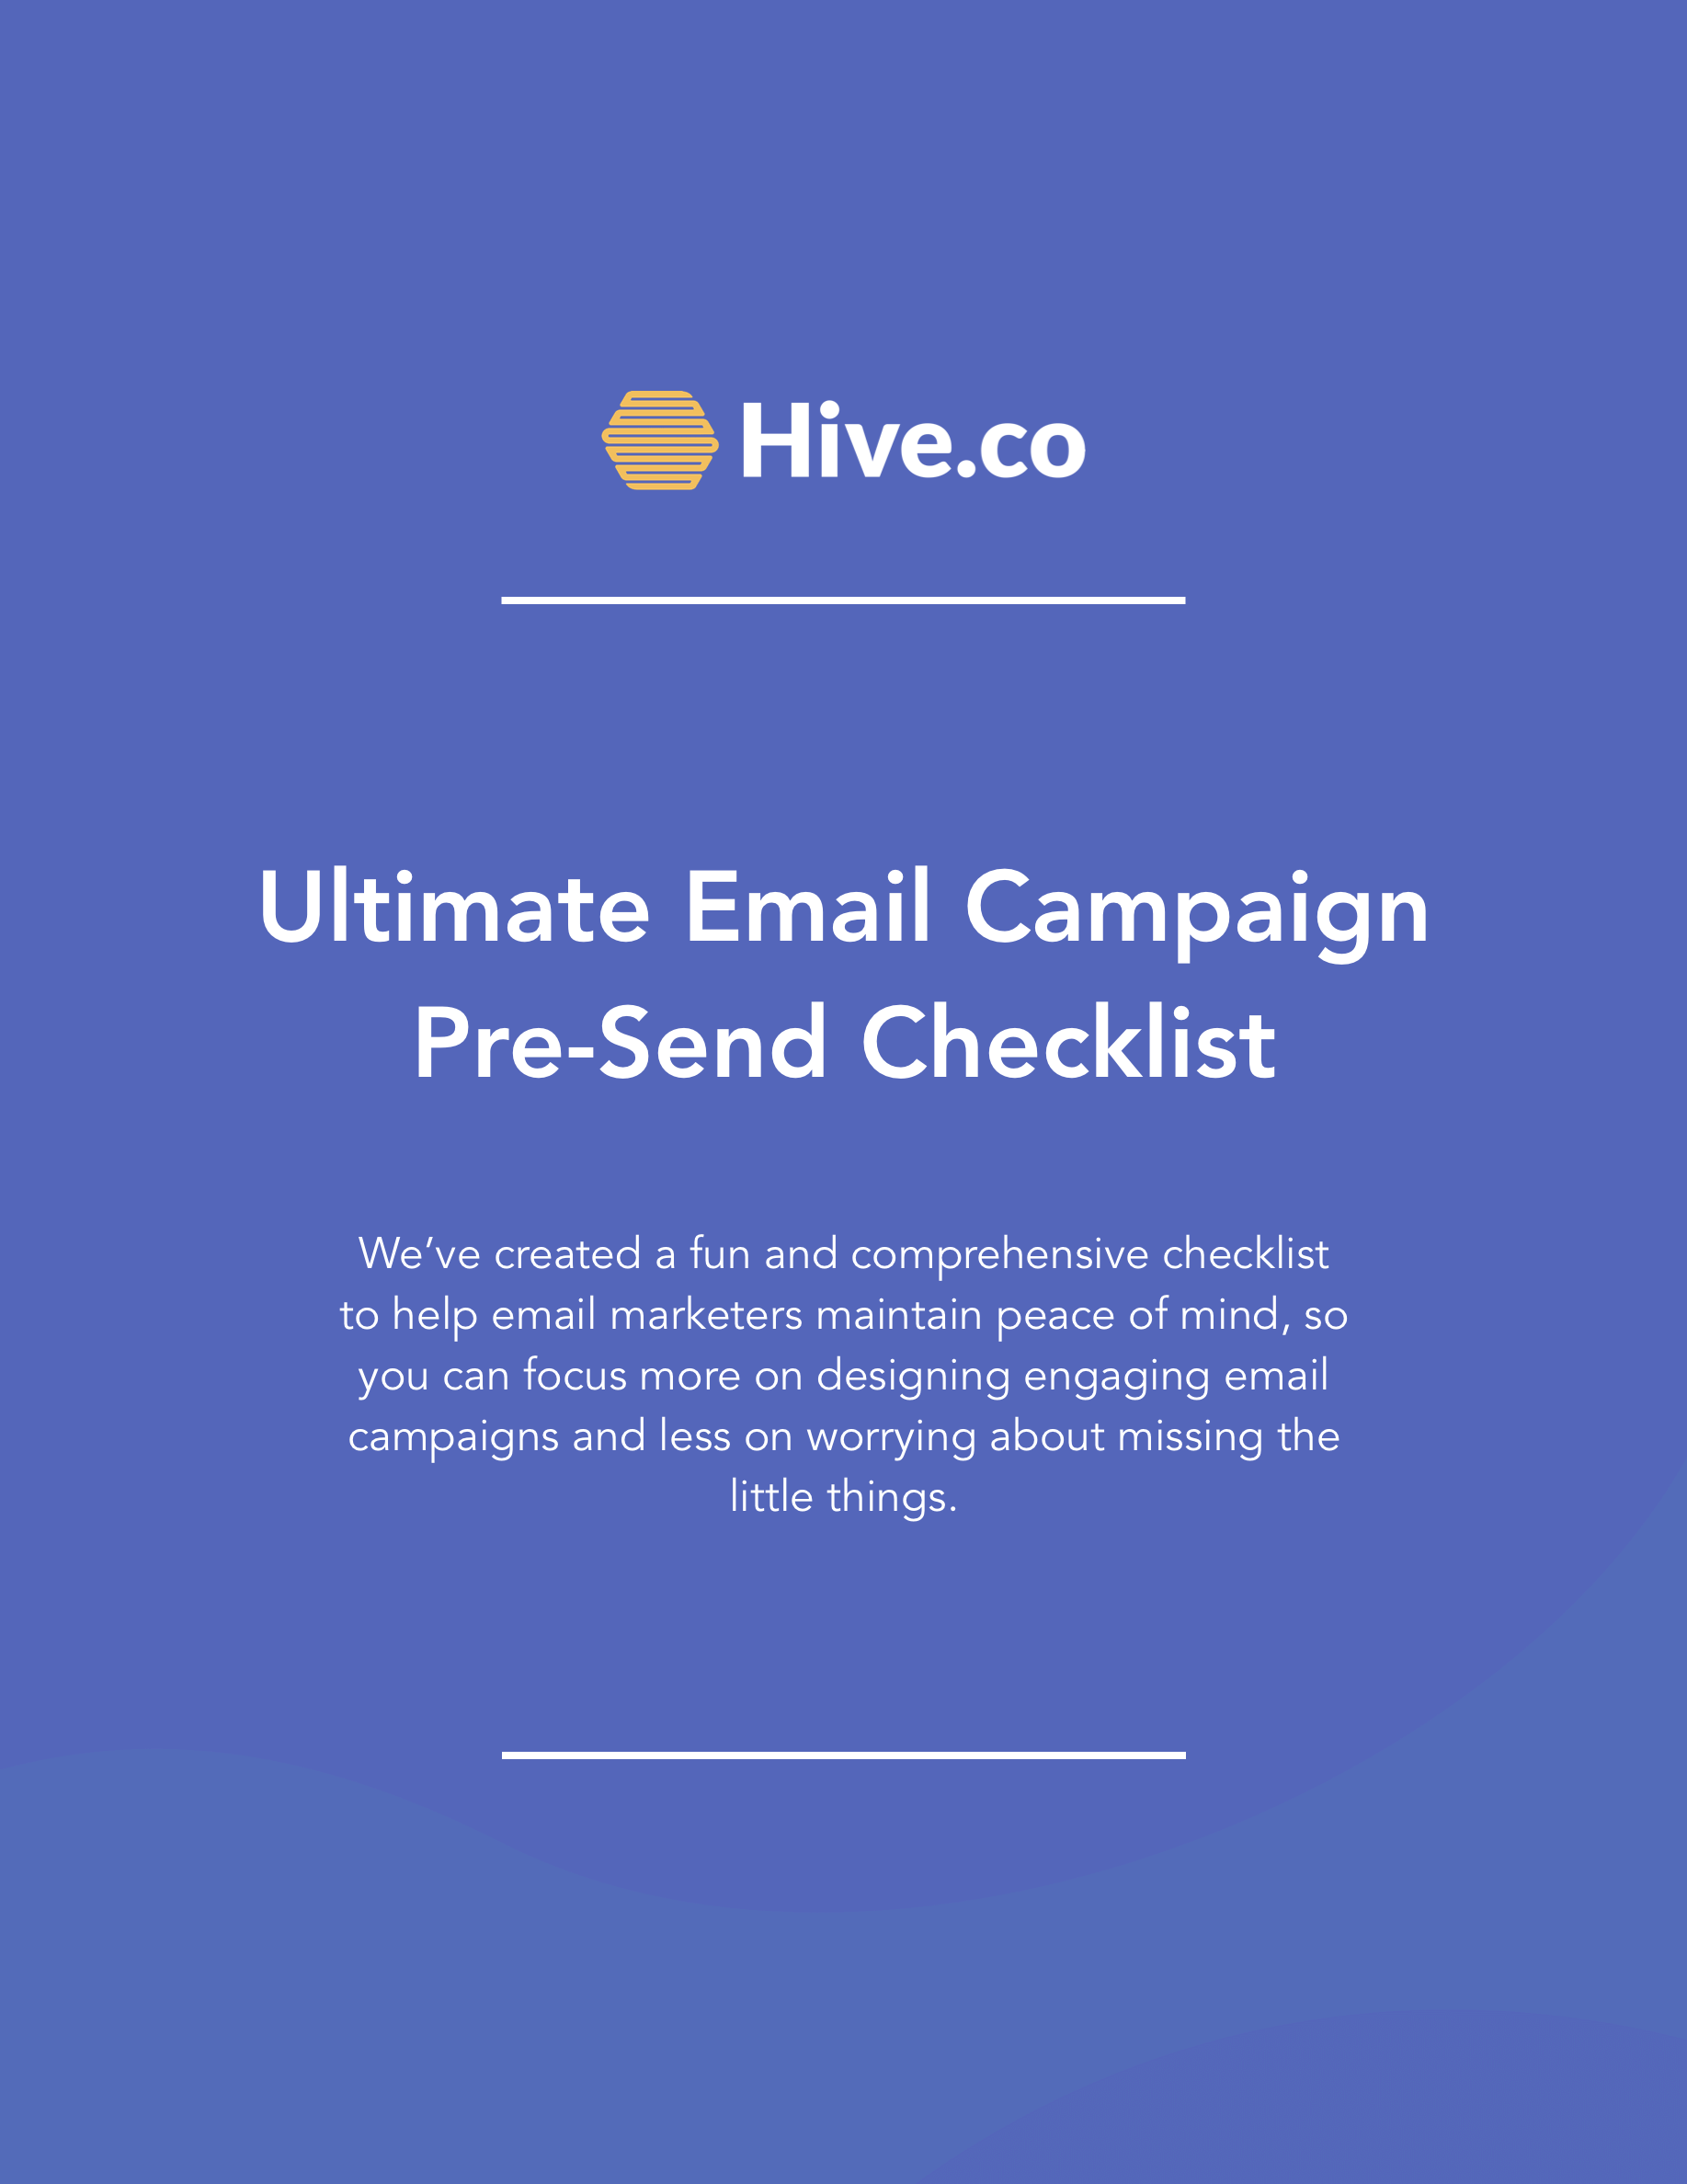 Hive.co Email Campaign Checklist Preview Page 1